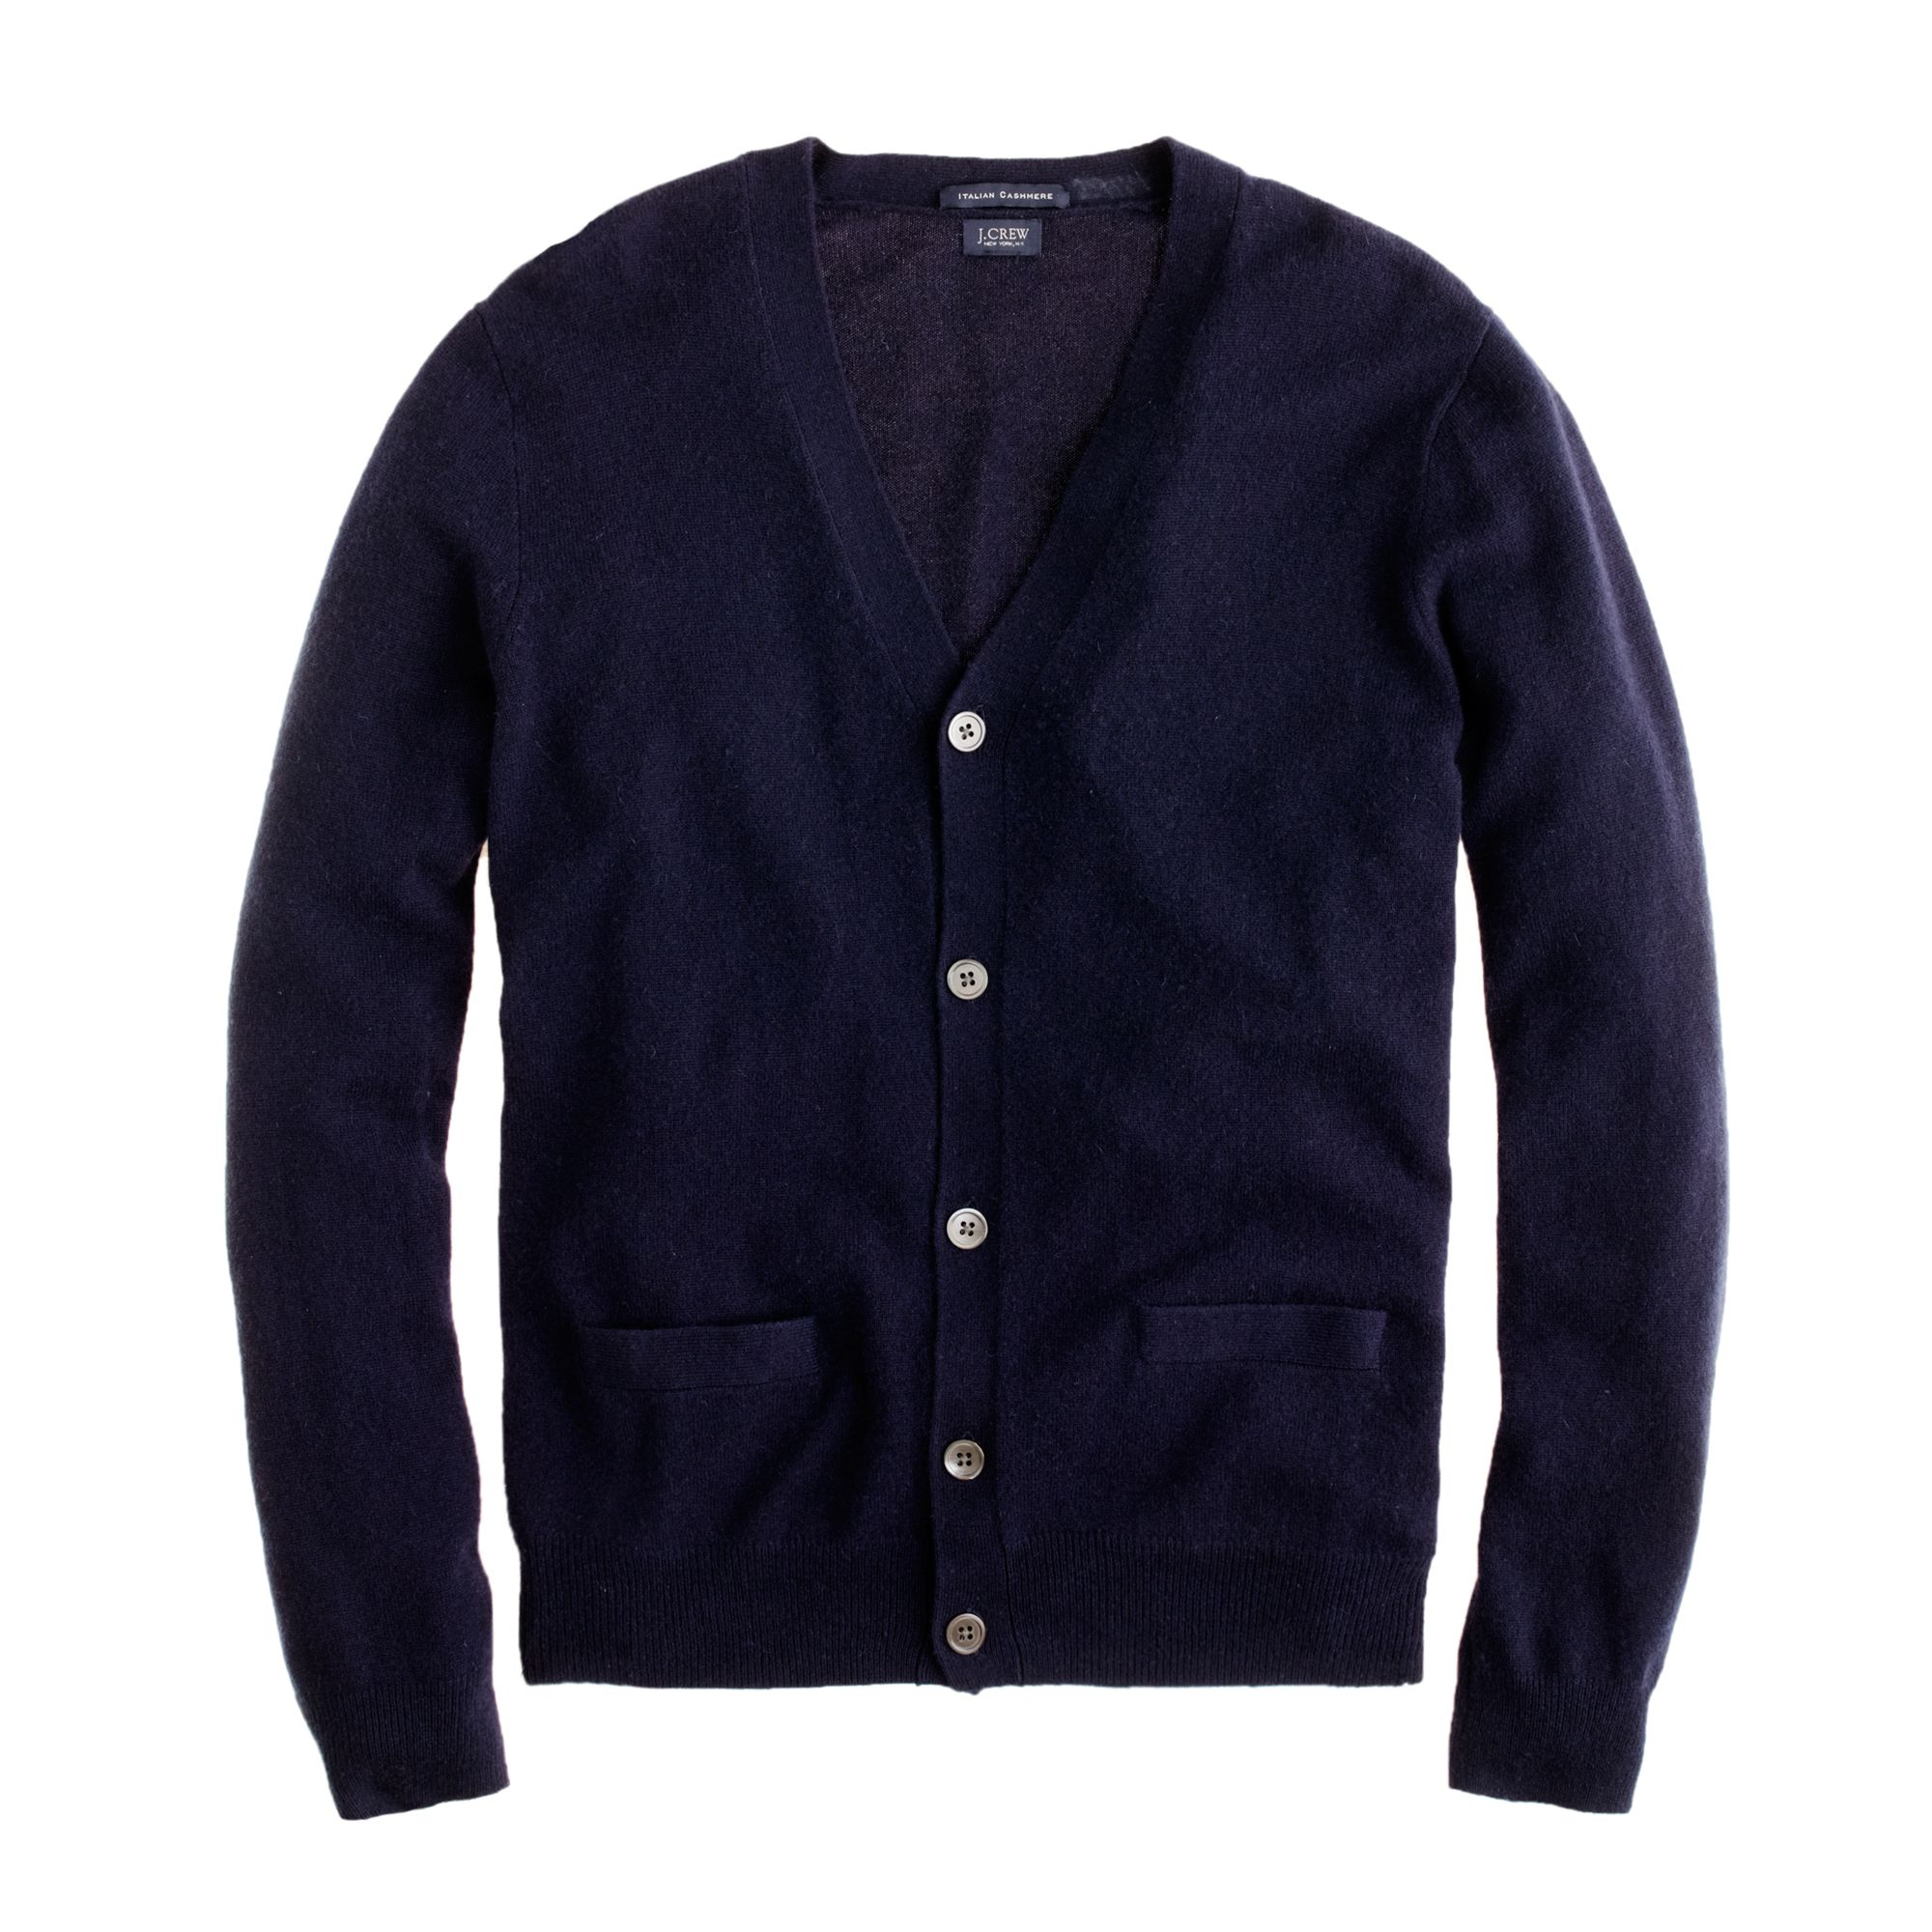 Find great deals on eBay for navy cashmere sweater. Shop with confidence.